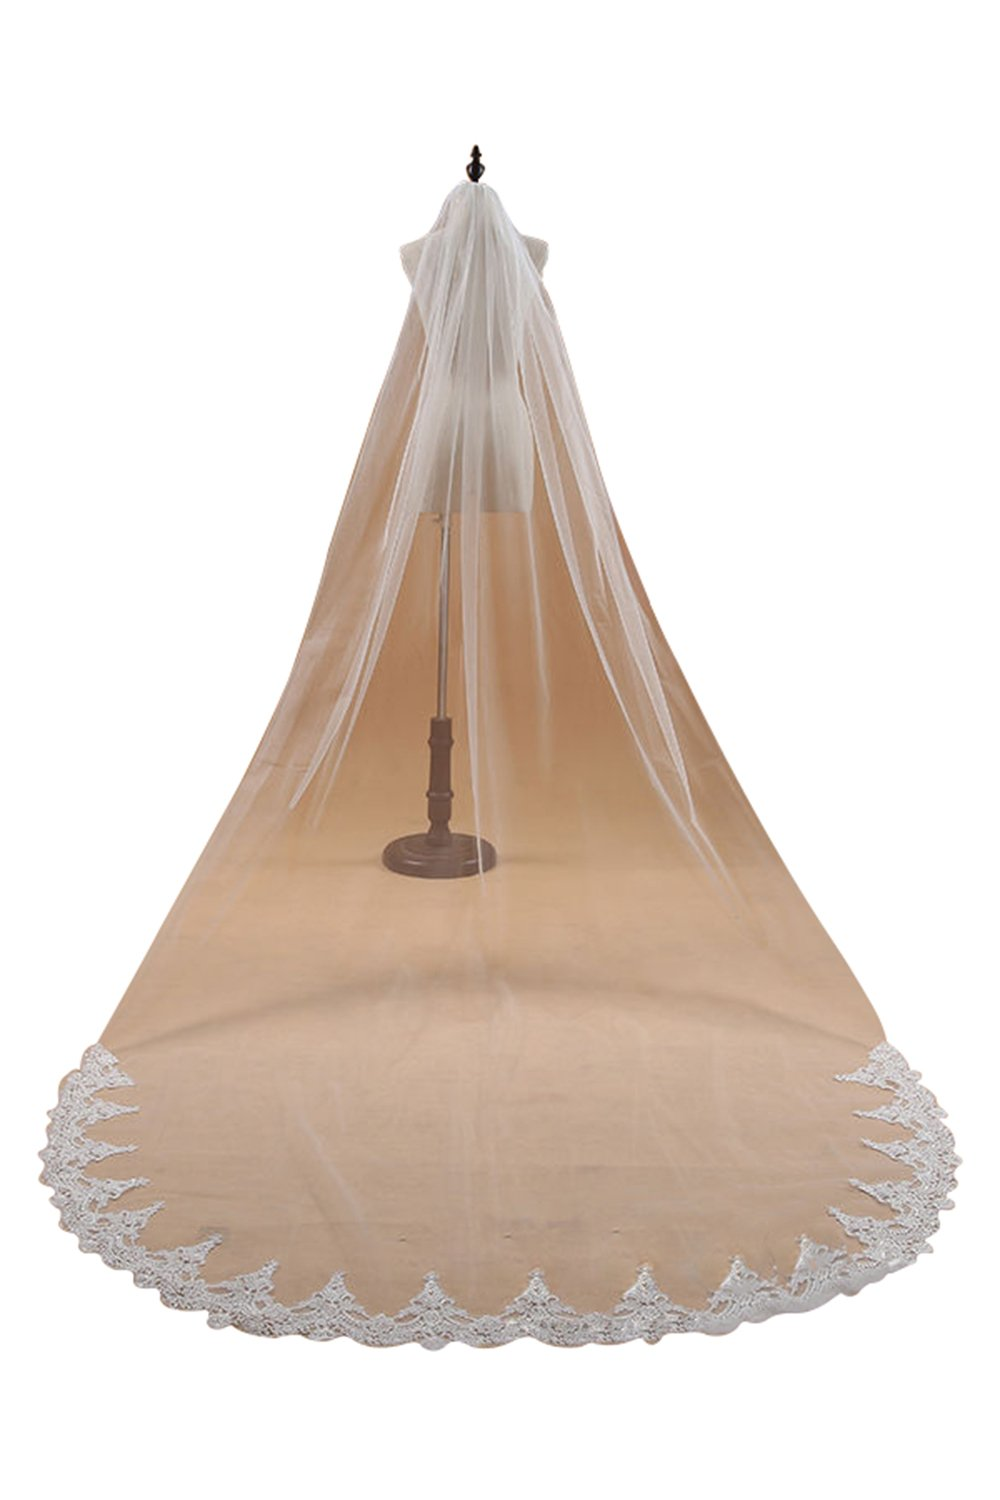 Tulle Sheer Long Length Chiffon Tulle Wedding Bridal Veils With Comb,Ivory